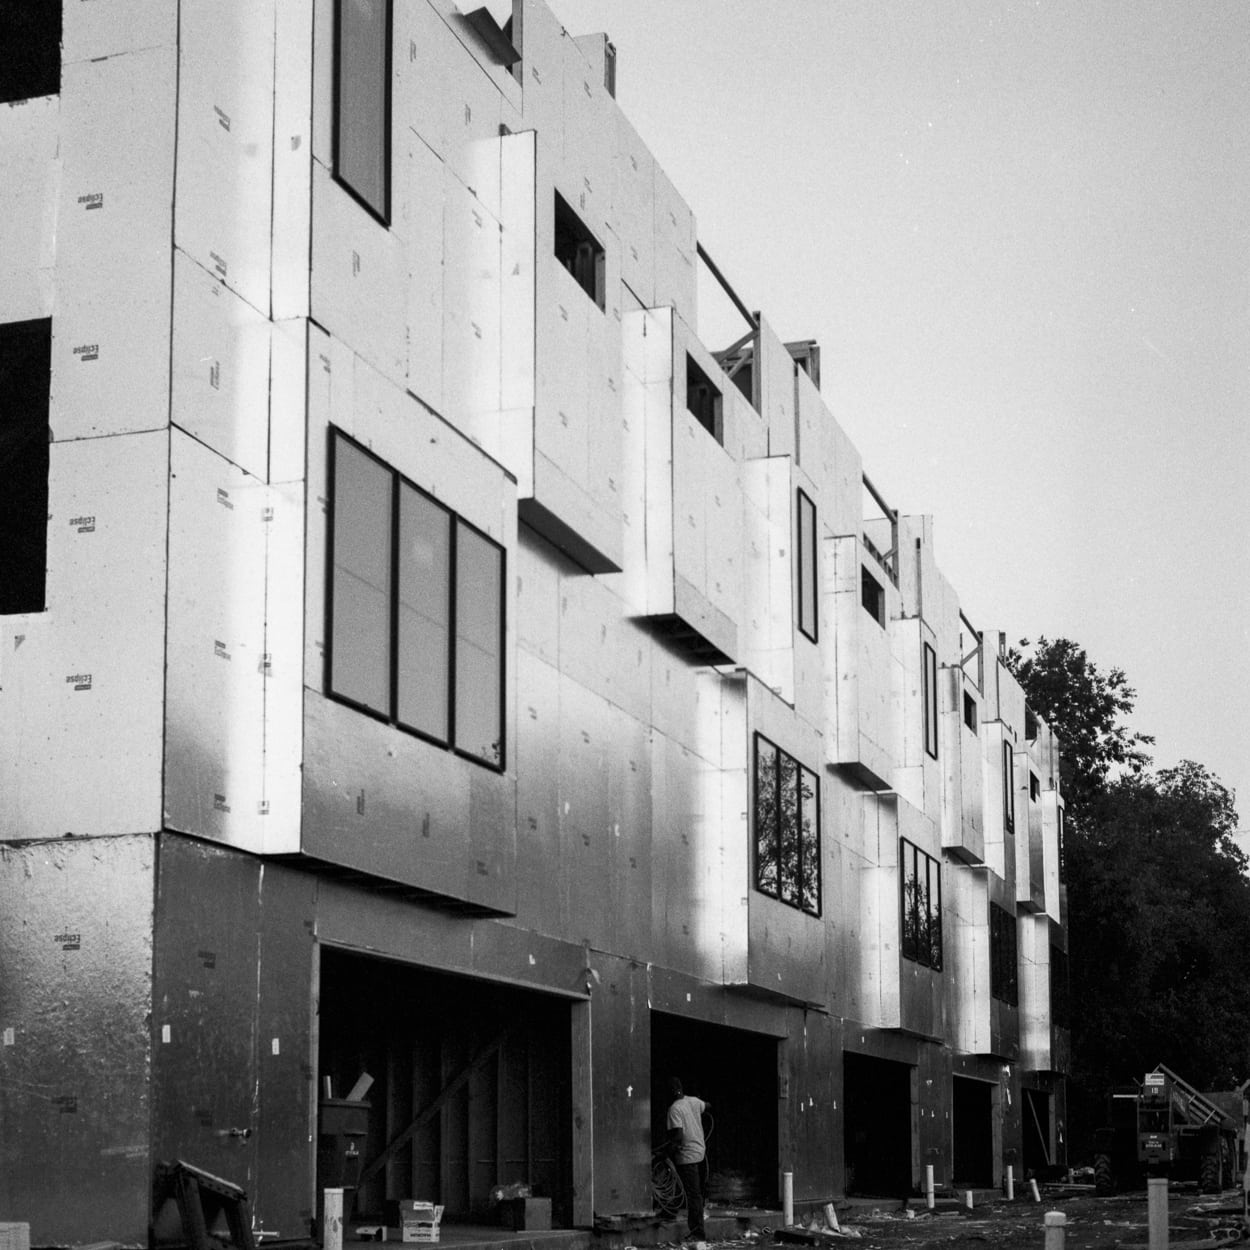 A row of townhouses under construction